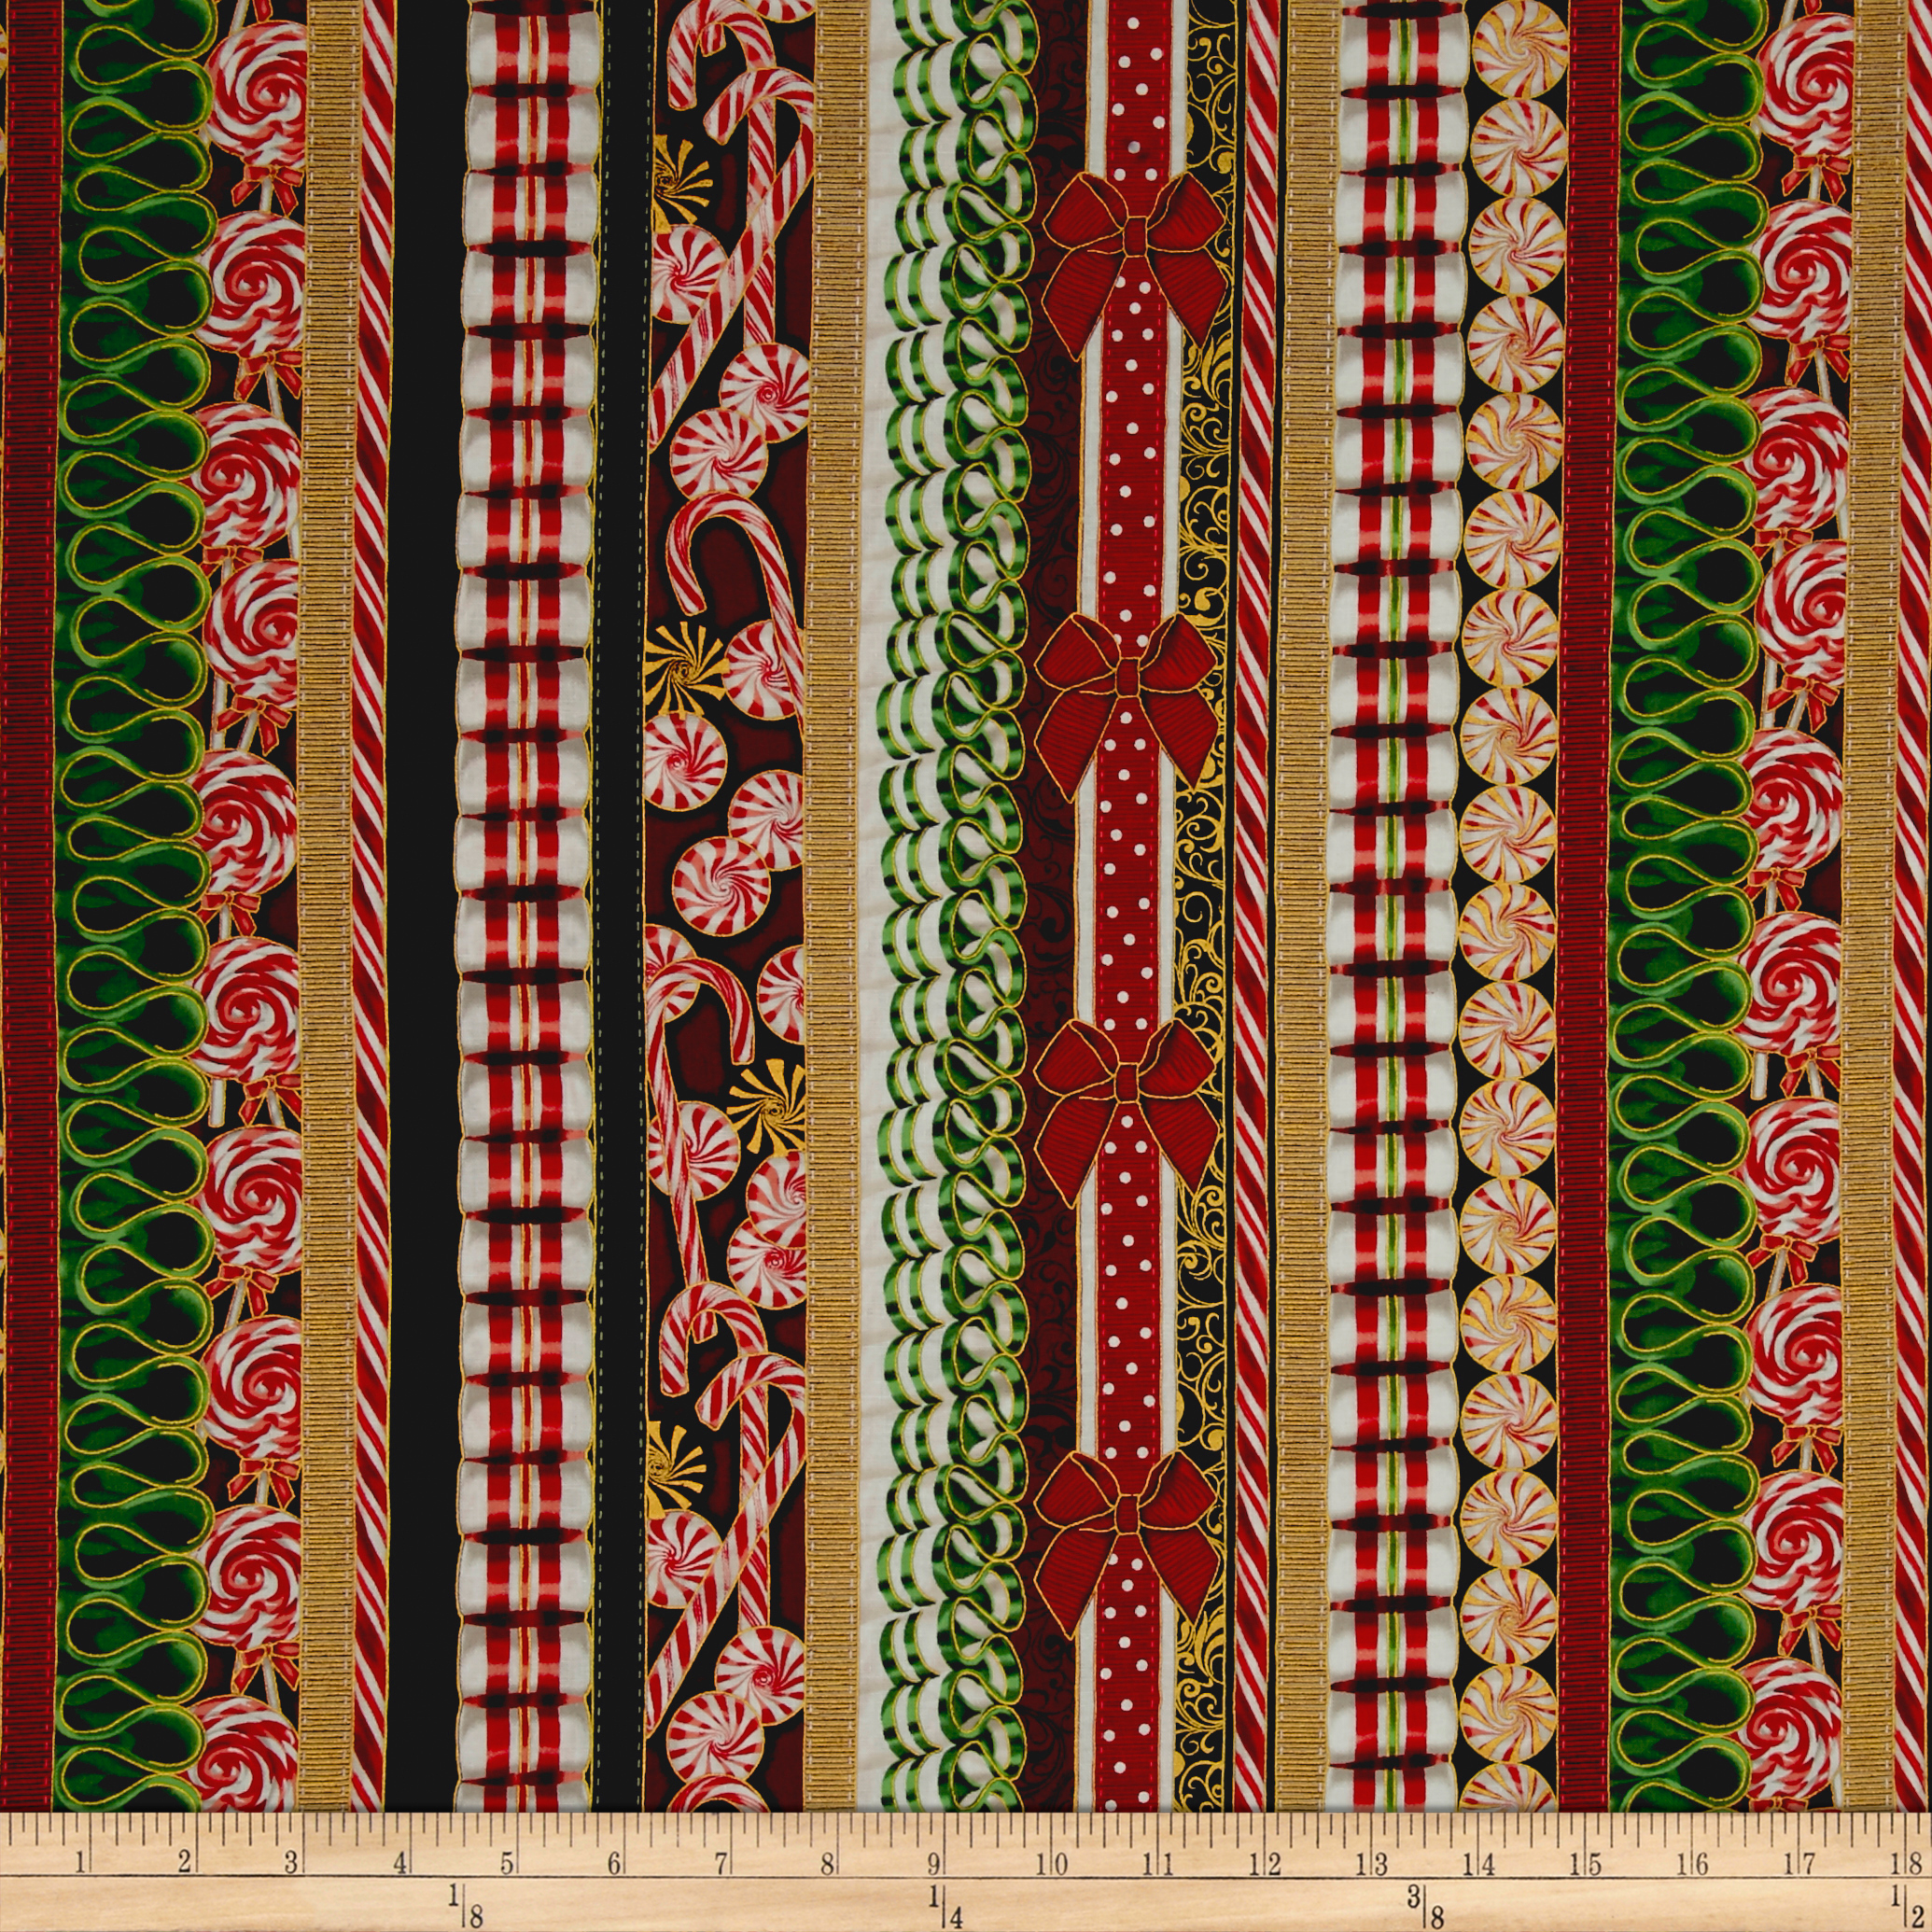 Suite Christmas Metallic Land Of The Sweets Stripe Candy Cane Fabric By The Yard